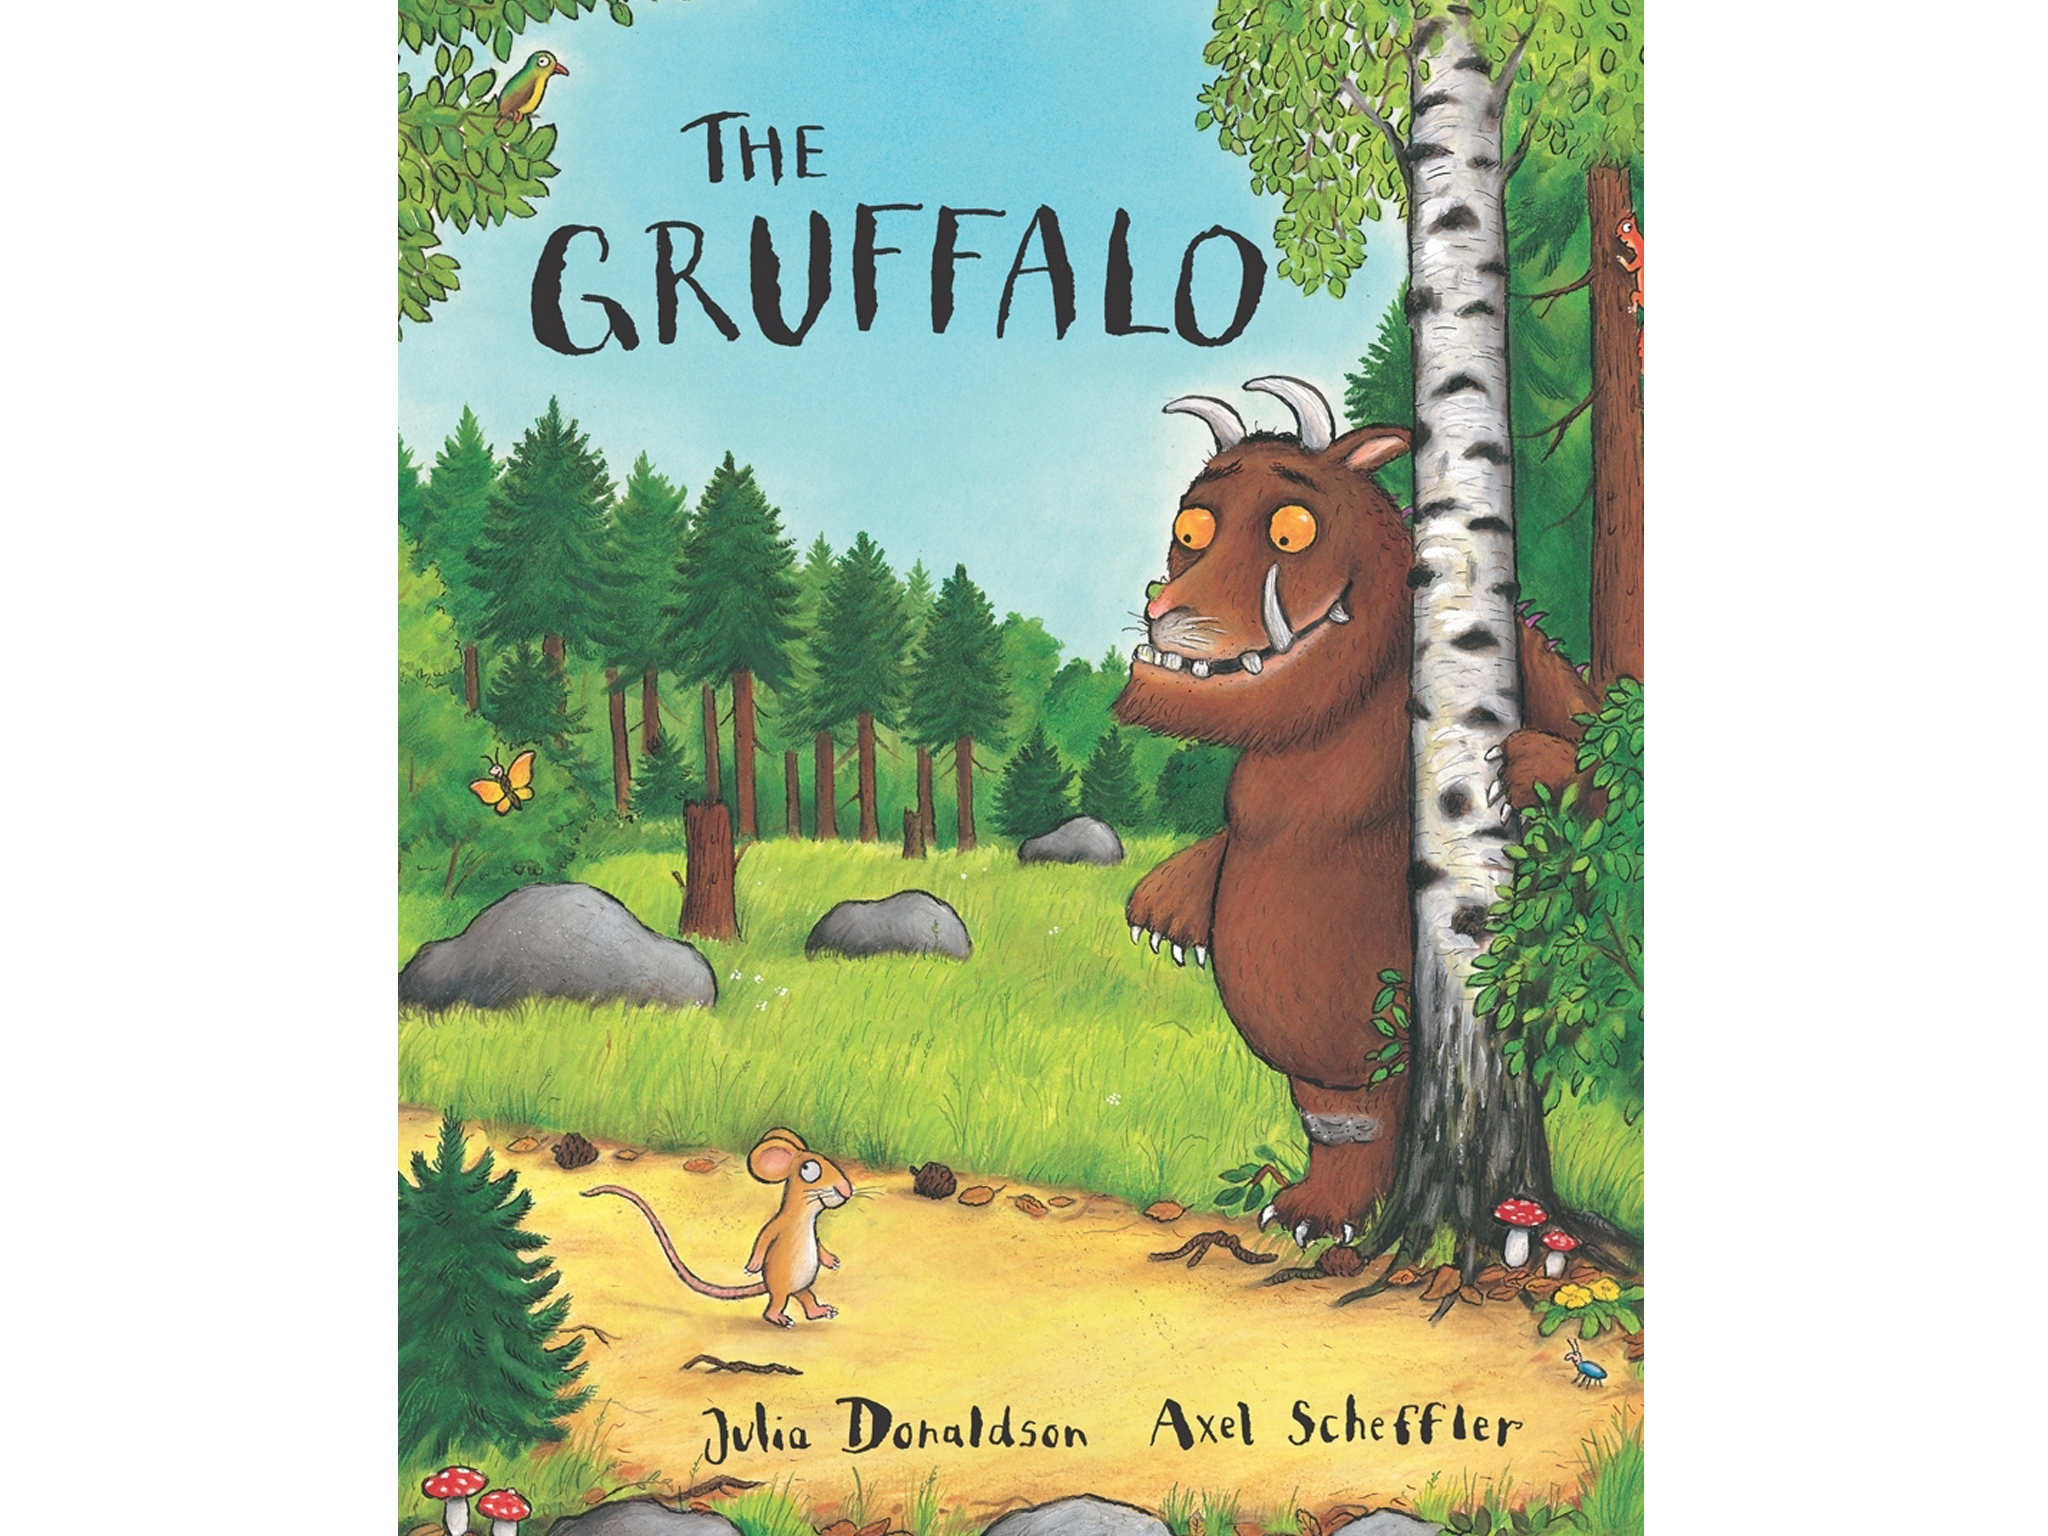 100 best children's books: The Gruffalo